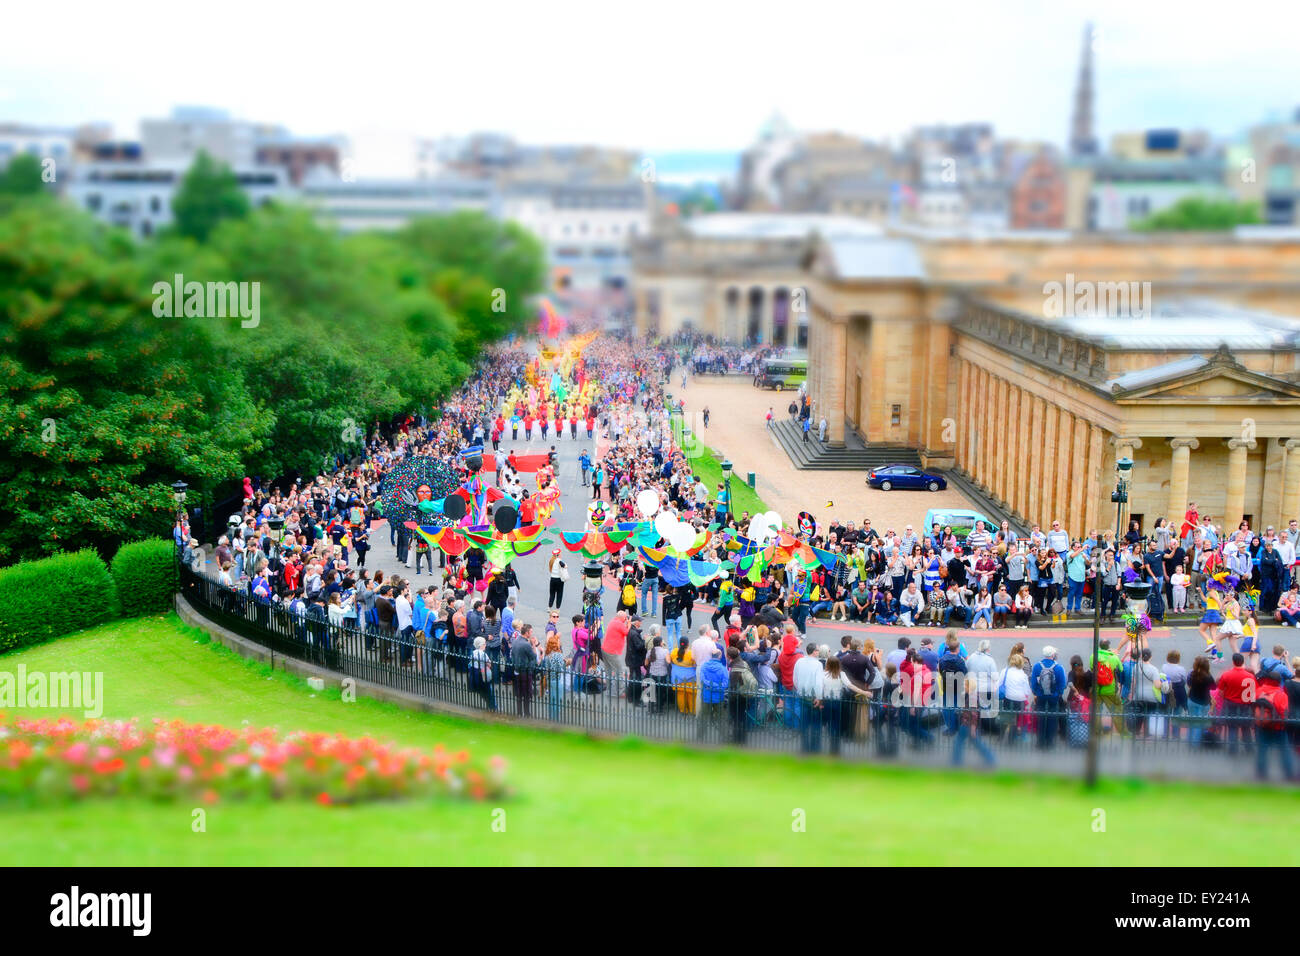 Crowds watch the Edinburgh Festival parade in July 2015 on the Mound - Stock Image